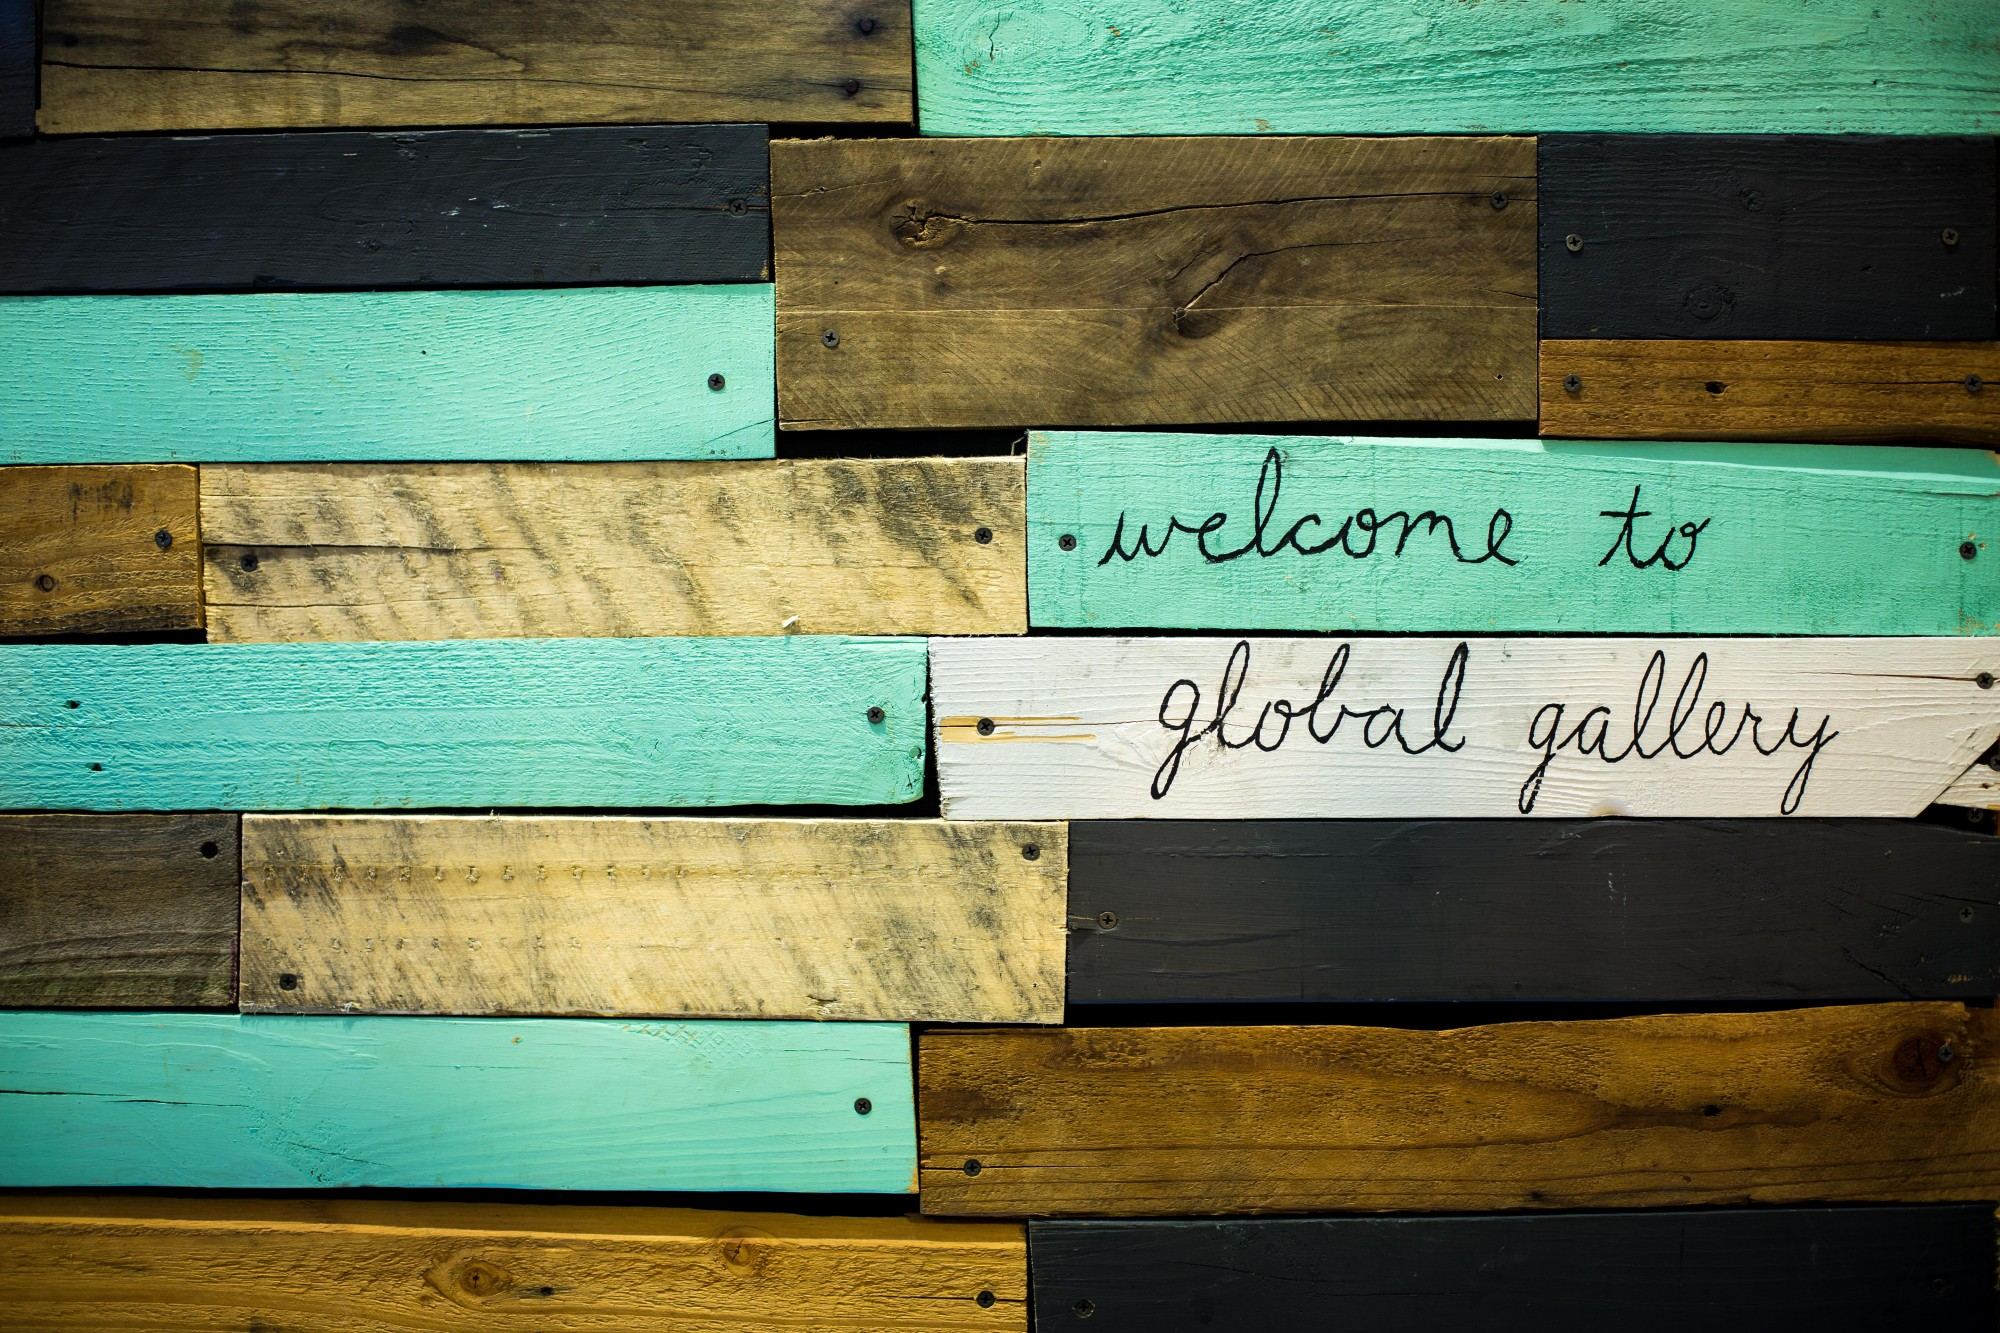 January Feature – Global Gallery Coffee Shop in Clintonville